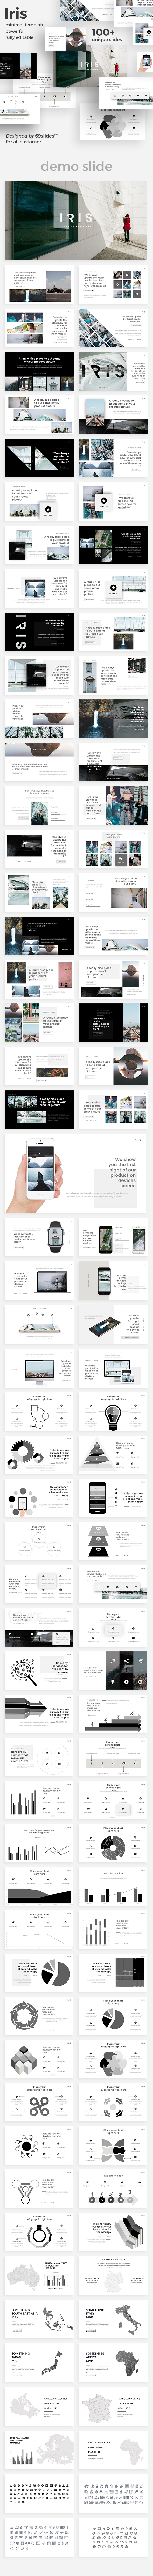 Iris Minimal Powerpoint Template - Creative PowerPoint Templates